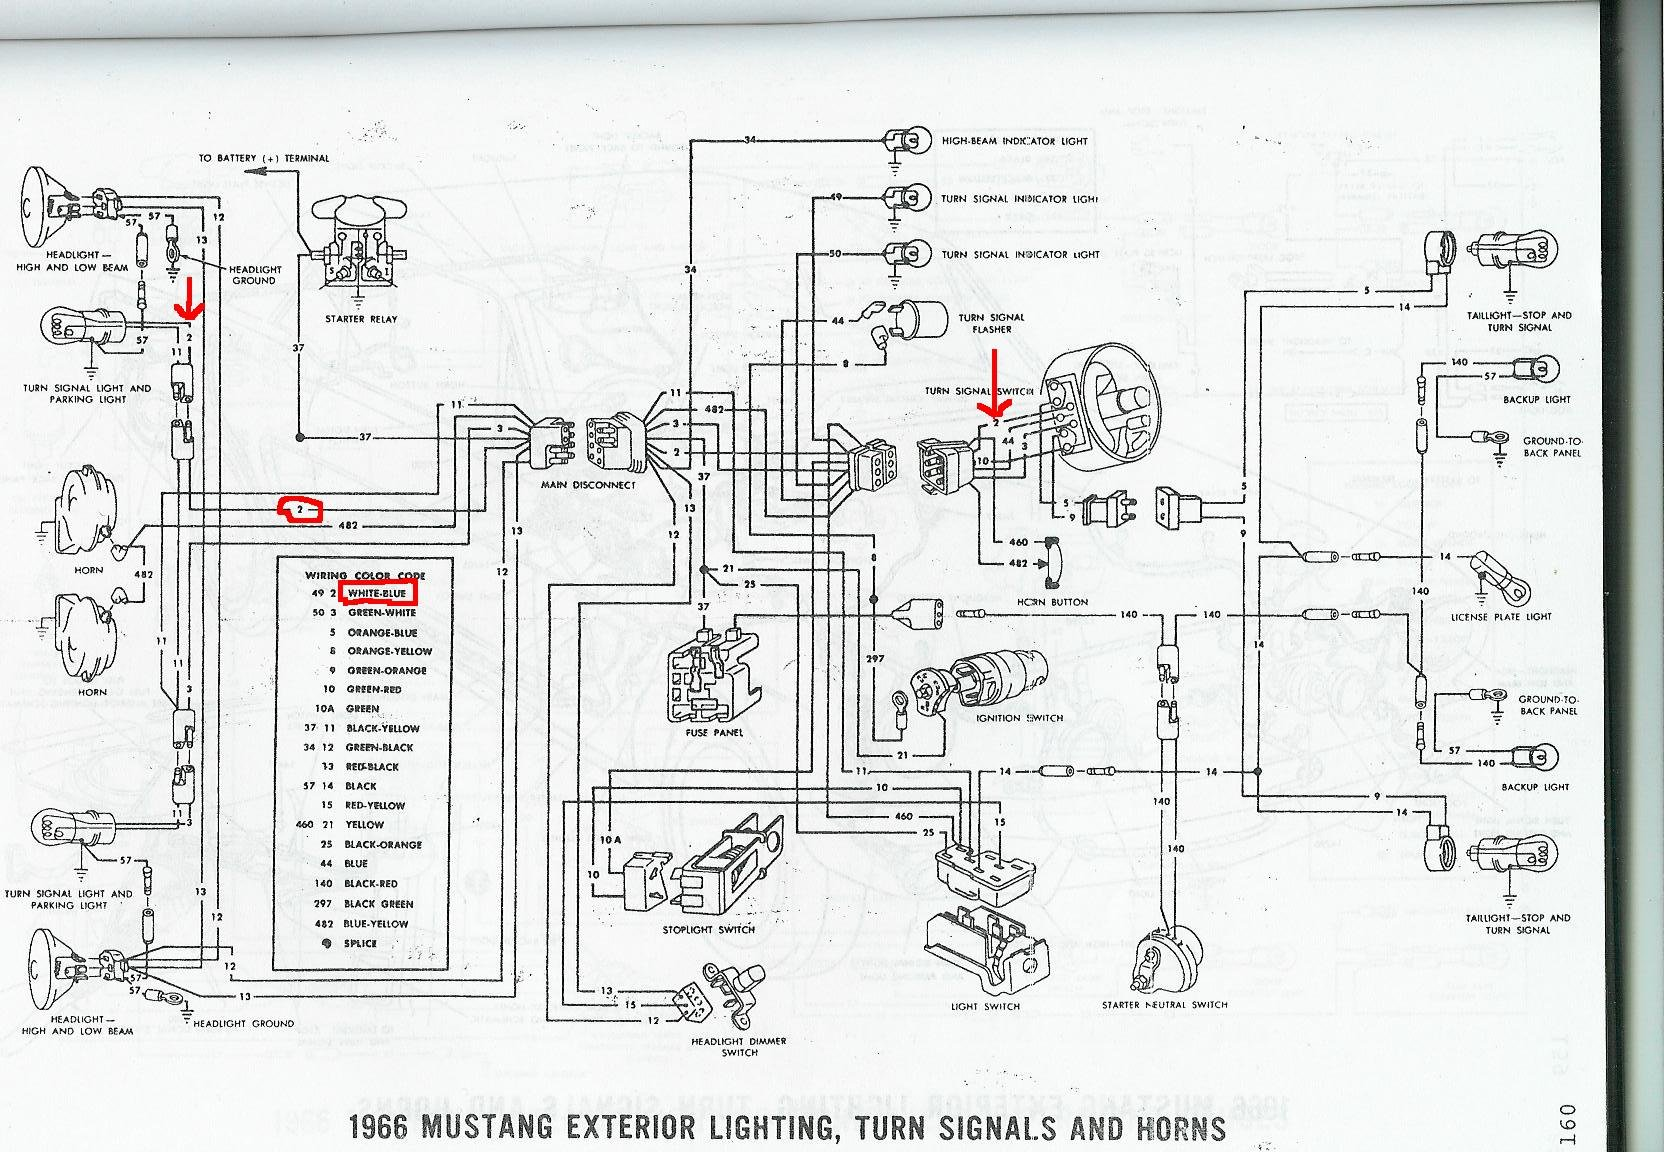 wiring diagram 1966 mustang ireleast info 66 mustang turn signal wiring diagram 66 wiring diagrams wiring diagram